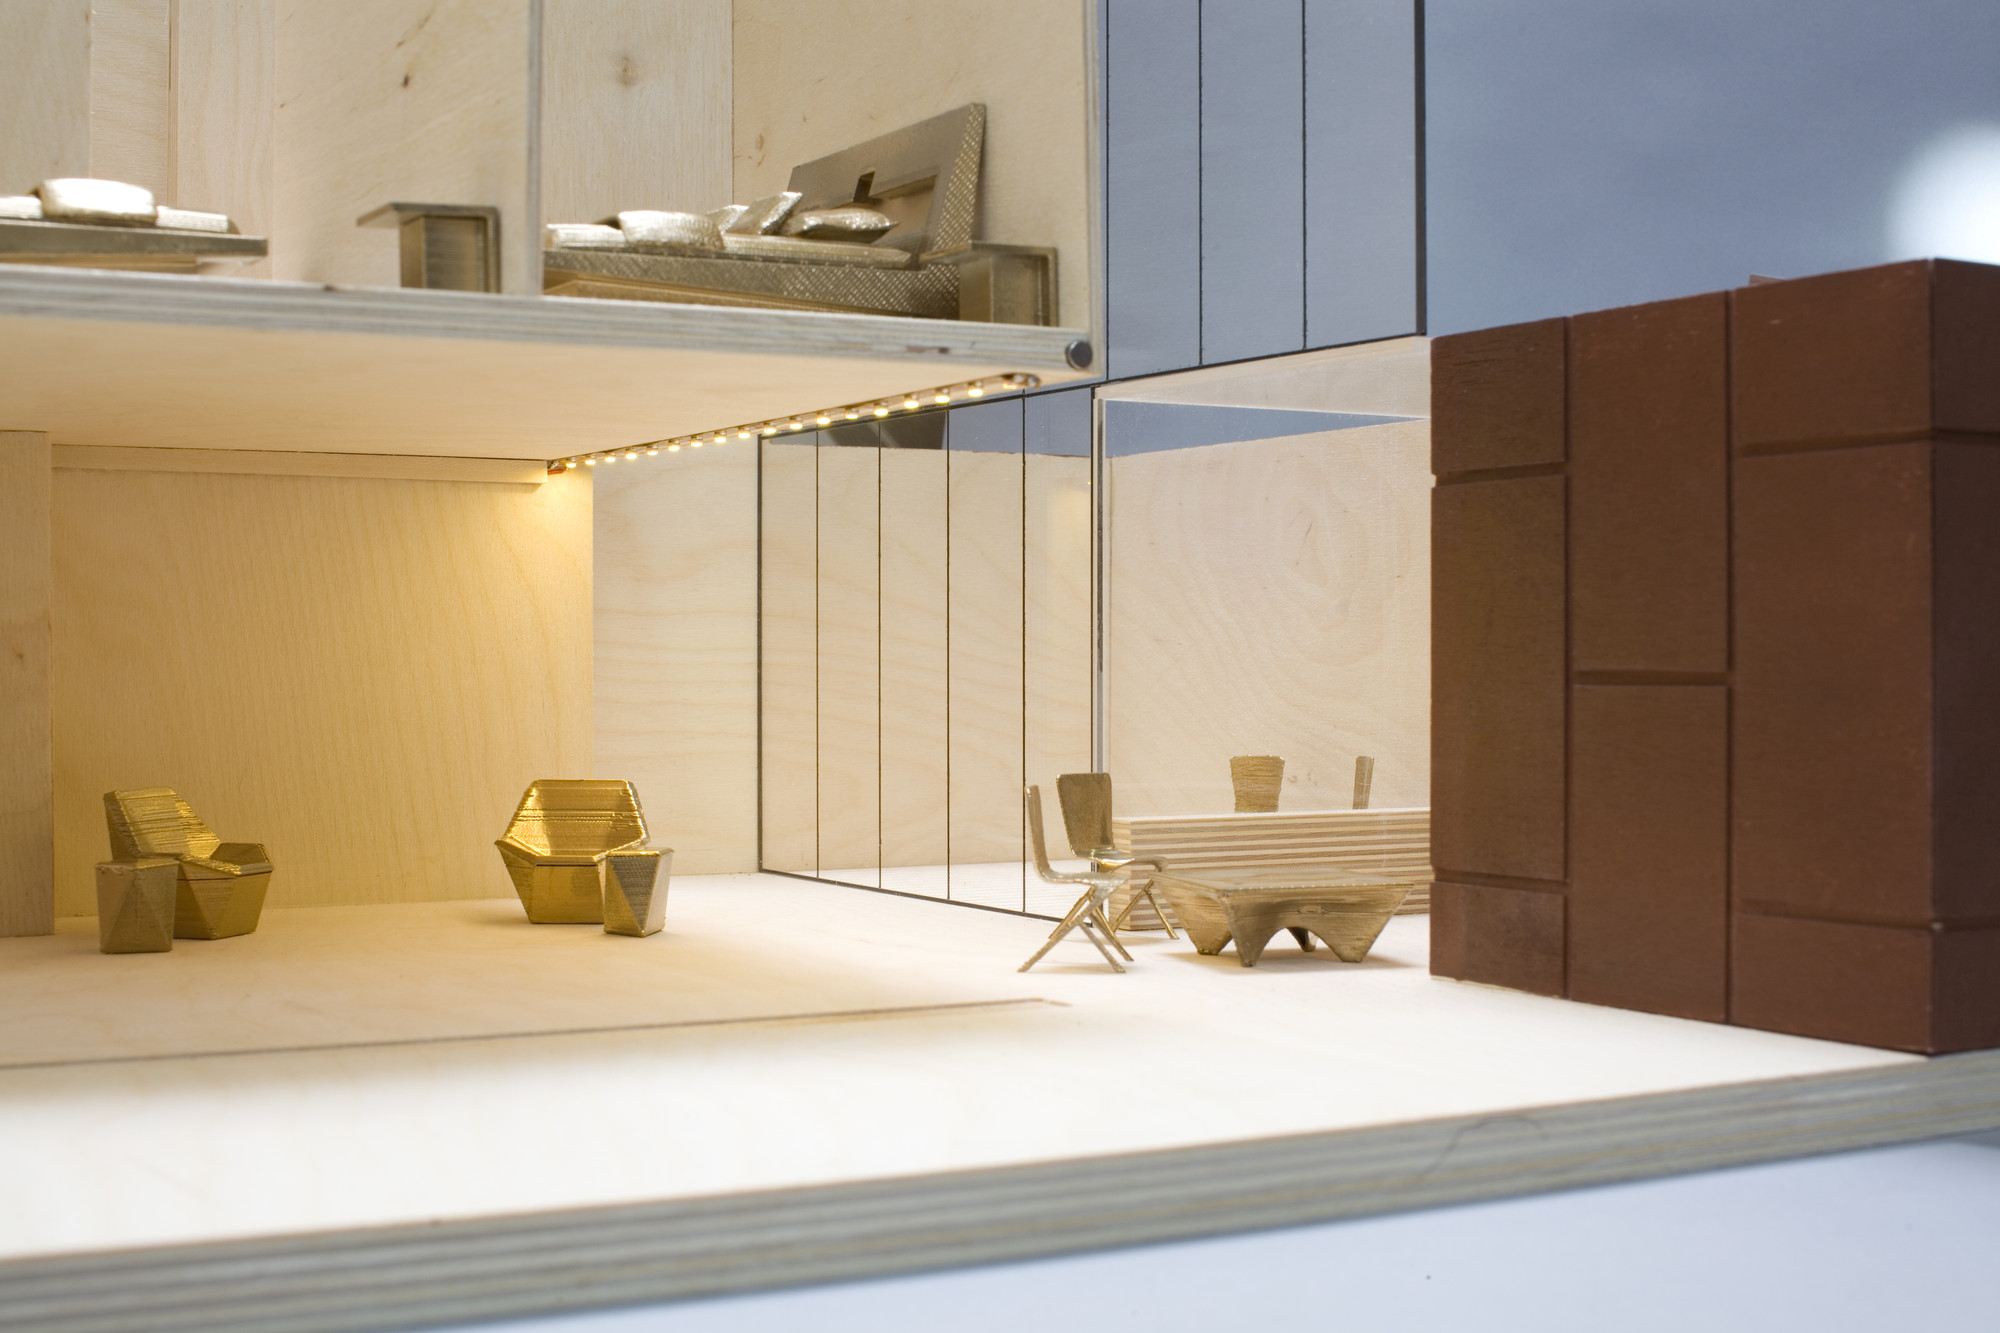 Adjaye Associates. Image Courtesy of A Dolls' House